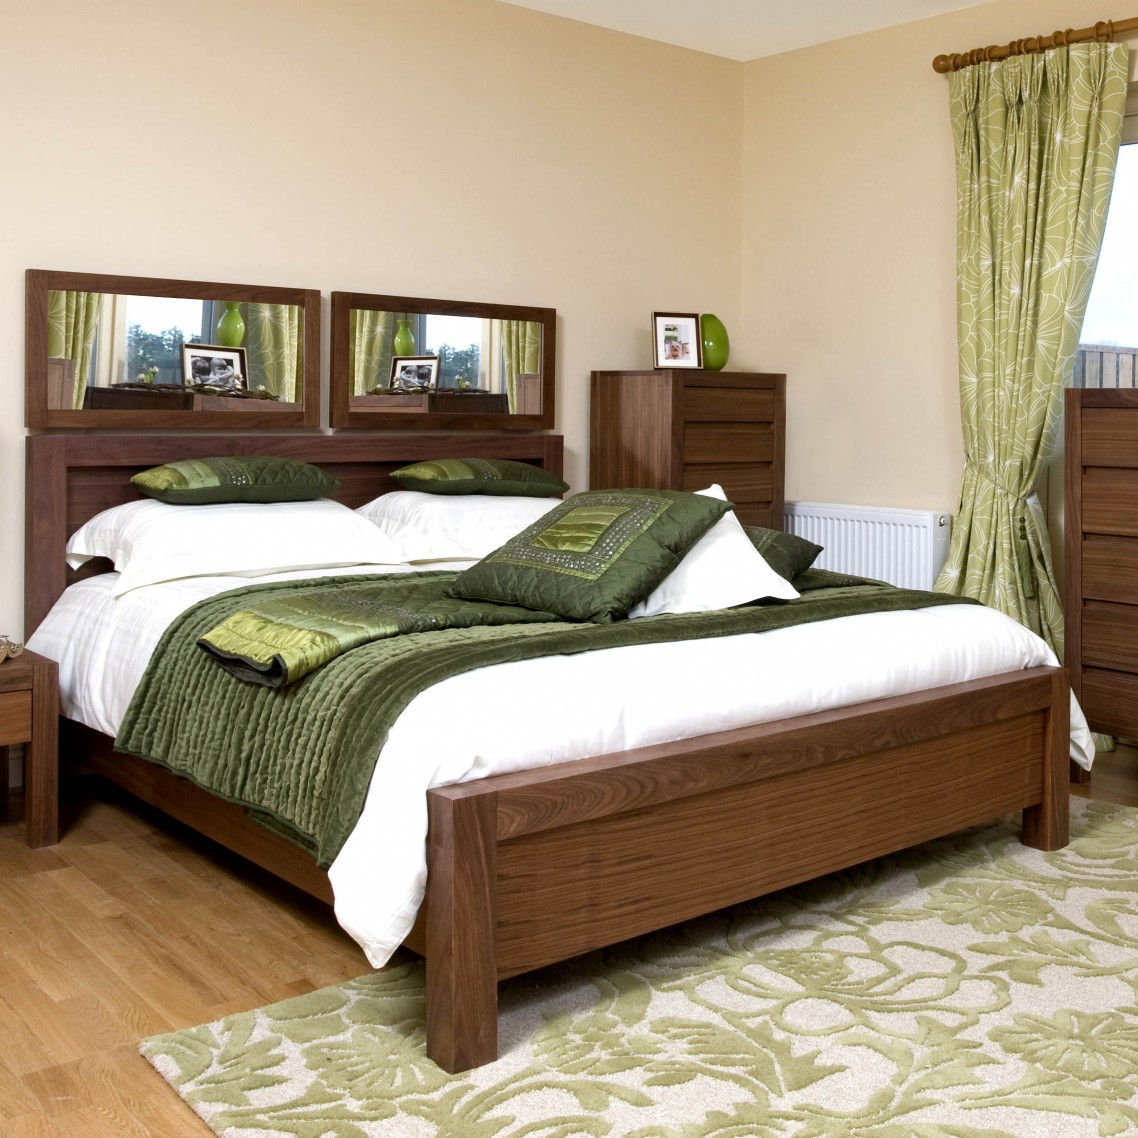 brown bedroom furniture decorating ideas photo - 10